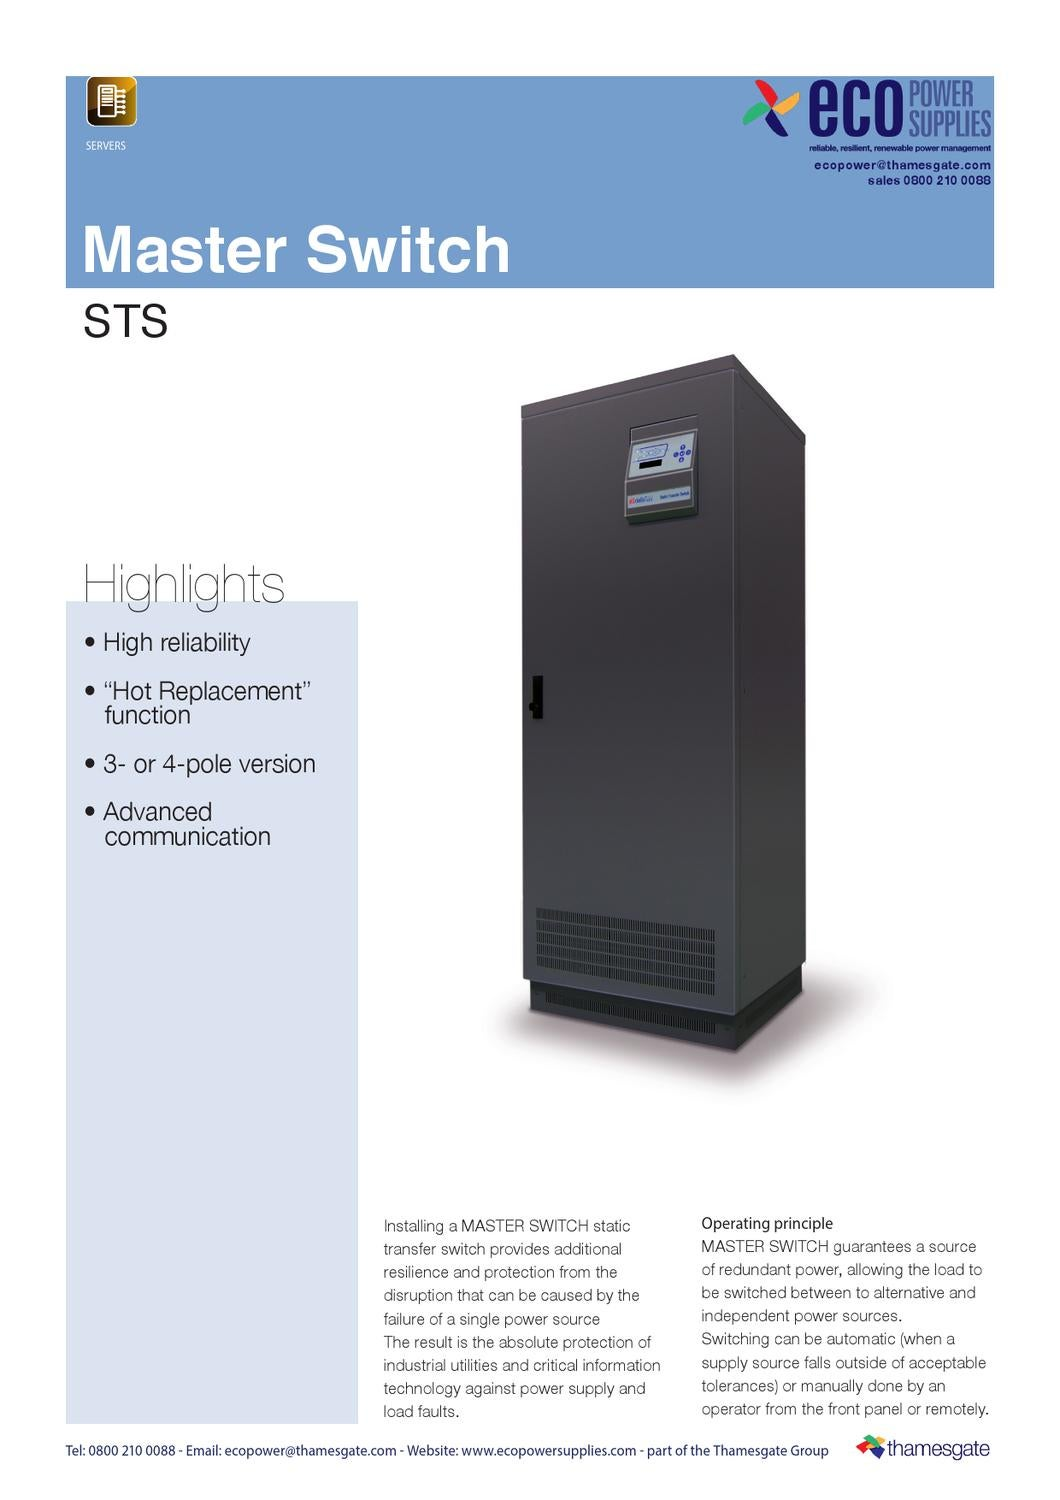 Riello Master Switch Transfer Switches Sts By Ecopower Supplies Issuu Ups Circuit Diagram